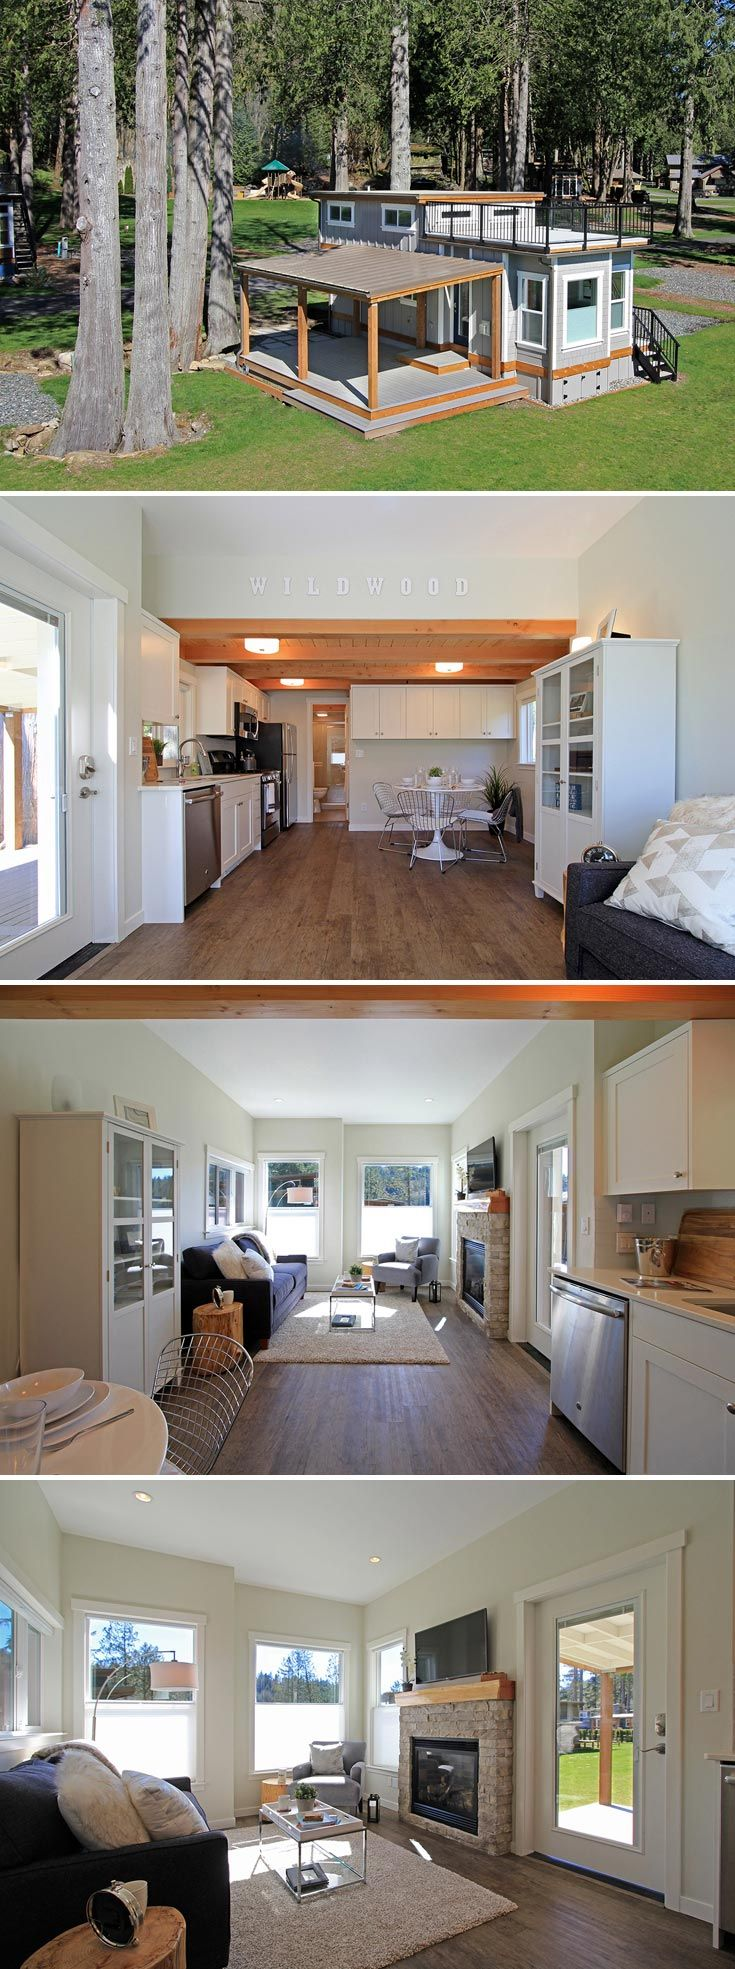 wonderful einfache dekoration und mobel tiny houses der trend der minihaeuser #1: Bellevue by West Coast Homes